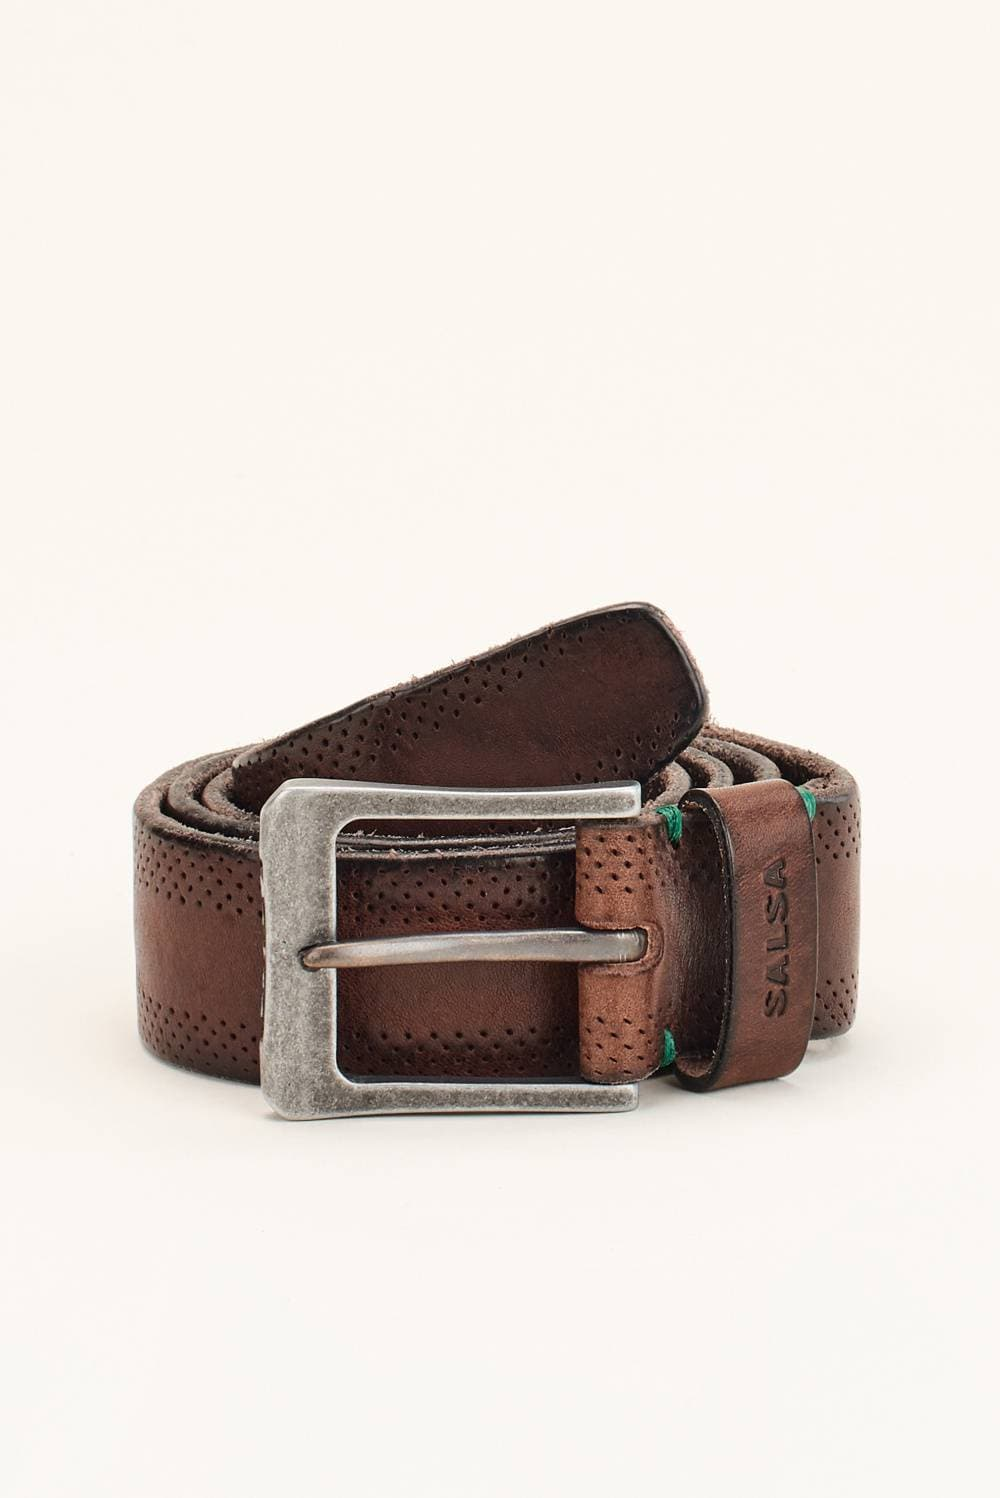 Perforated leather belt - Salsa